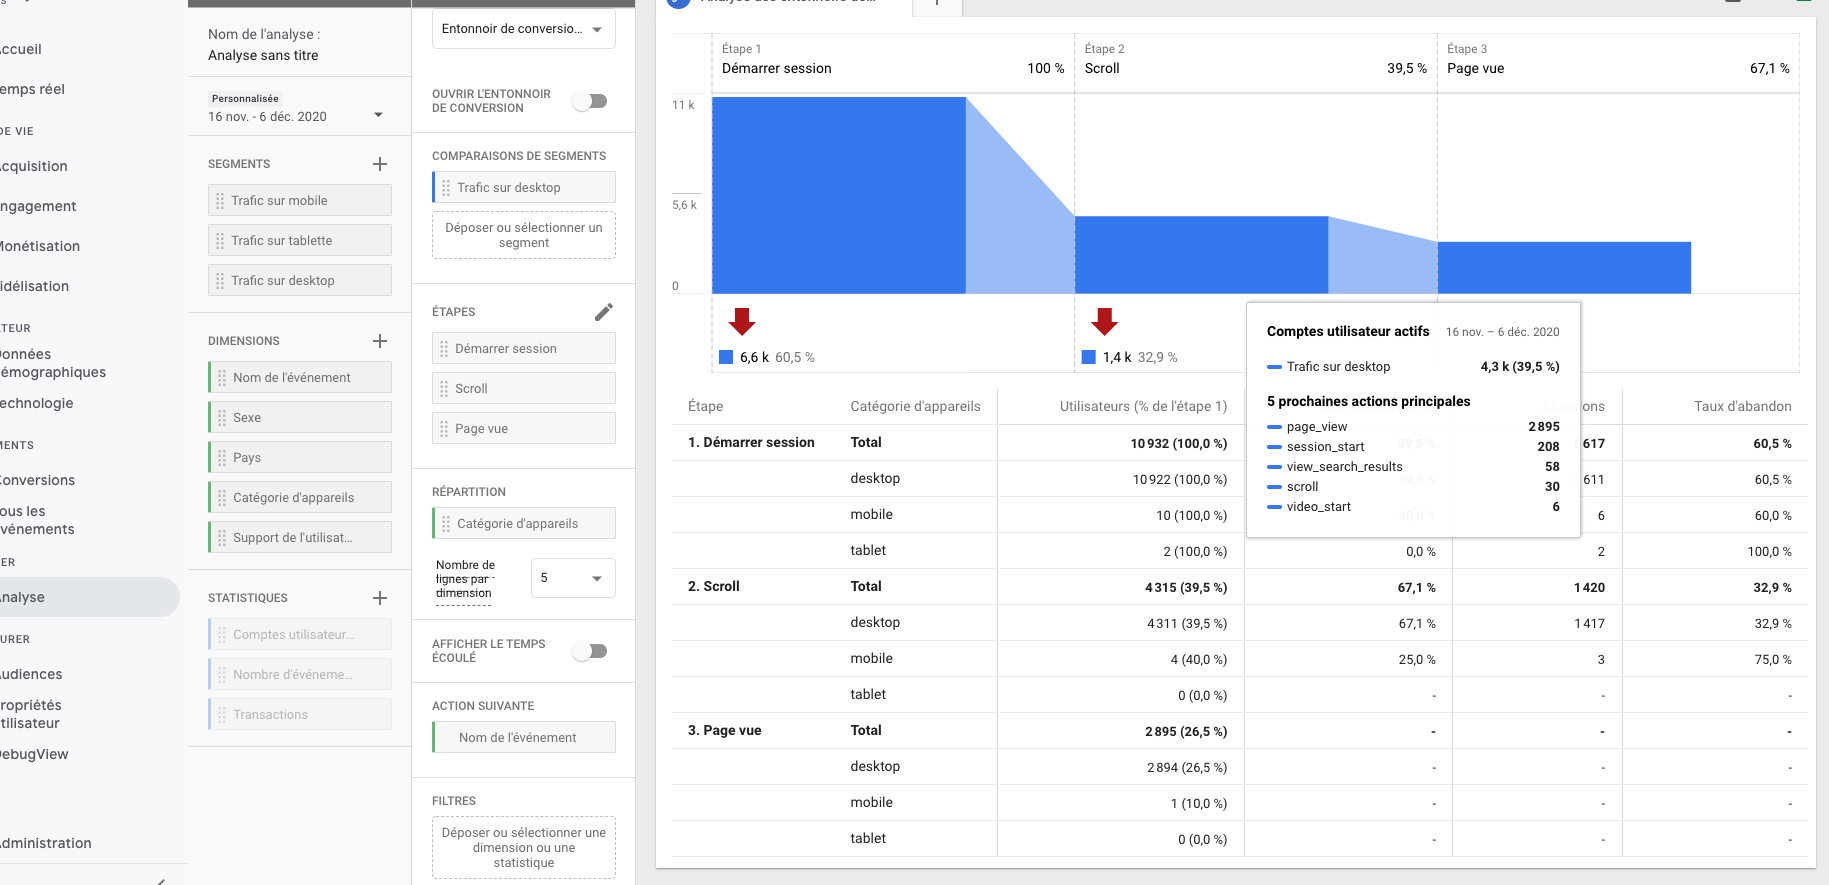 Personnaliser des entonnoirs Google analytics 4